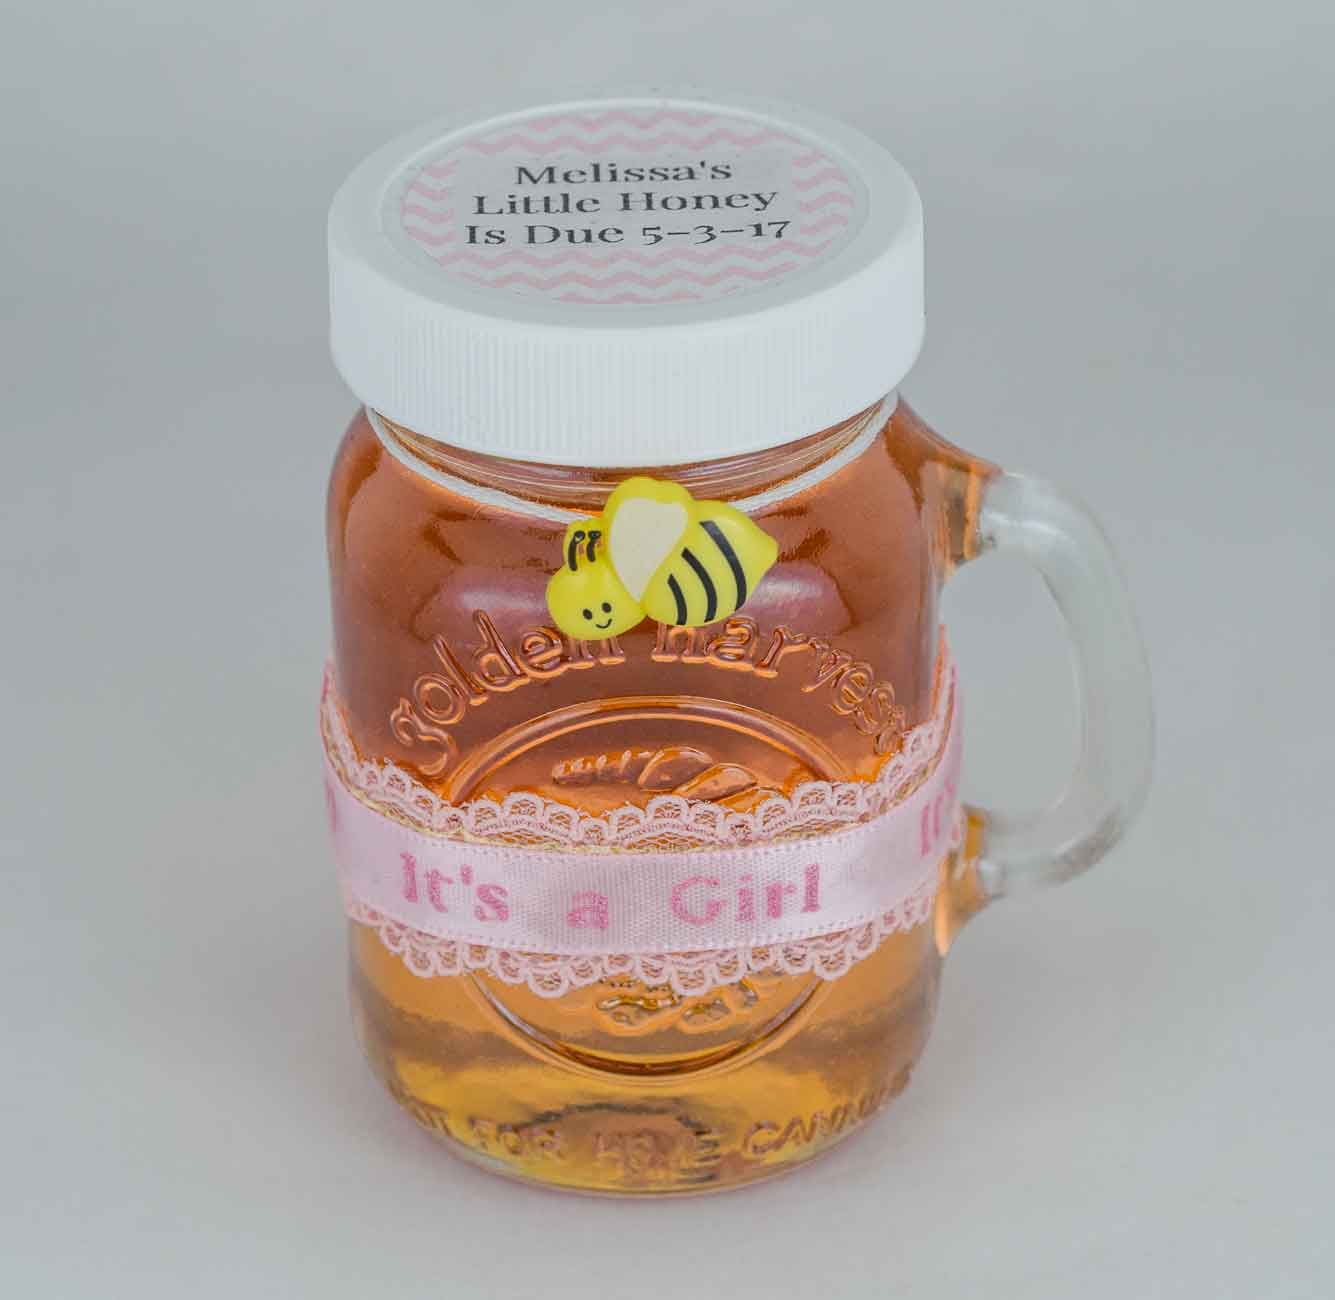 Tied bee and crochet tied label Homemade DIY Honey Jar Wedding Favor Idea